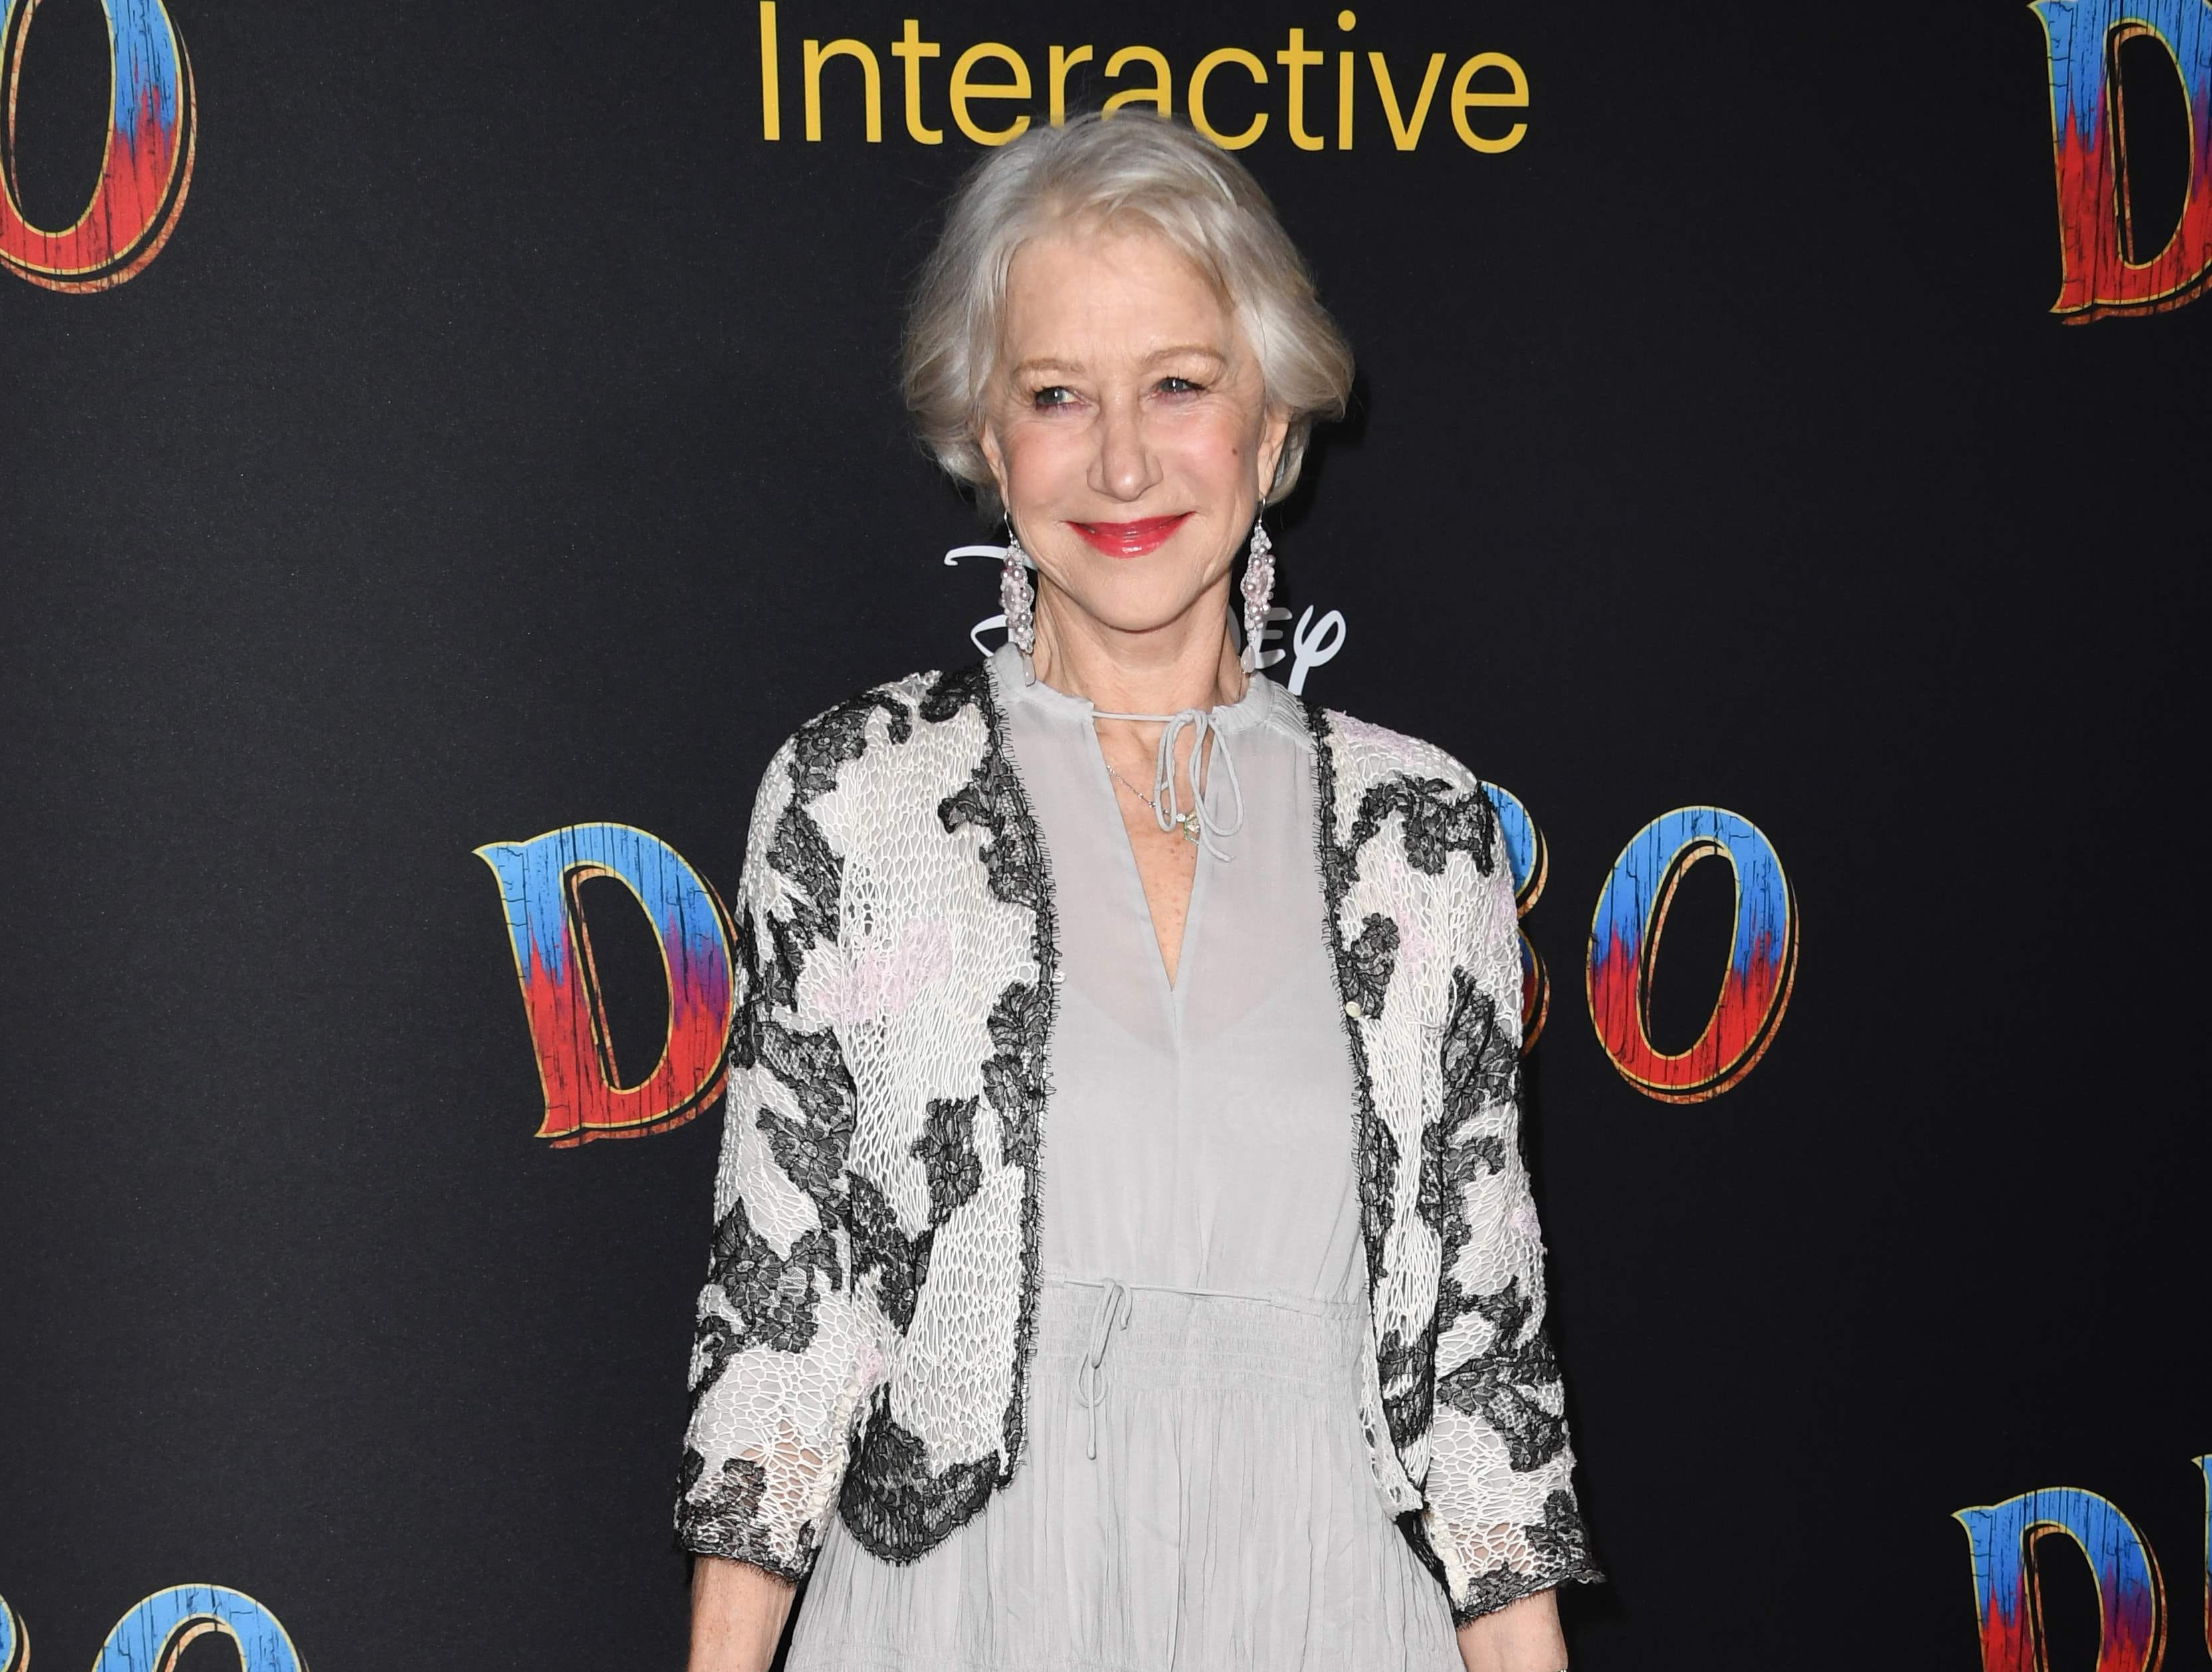 """British actress Helen Mirren arrives for the world premiere of Disney's """"Dumbo"""" at El Capitan theatre on March 11, 2019 in Hollywood. (Photo by Robyn Beck / AFP)ROBYN BECK/AFP/Getty Images ORG XMIT: Premiere ORIG FILE ID: AFP_1EI15H"""